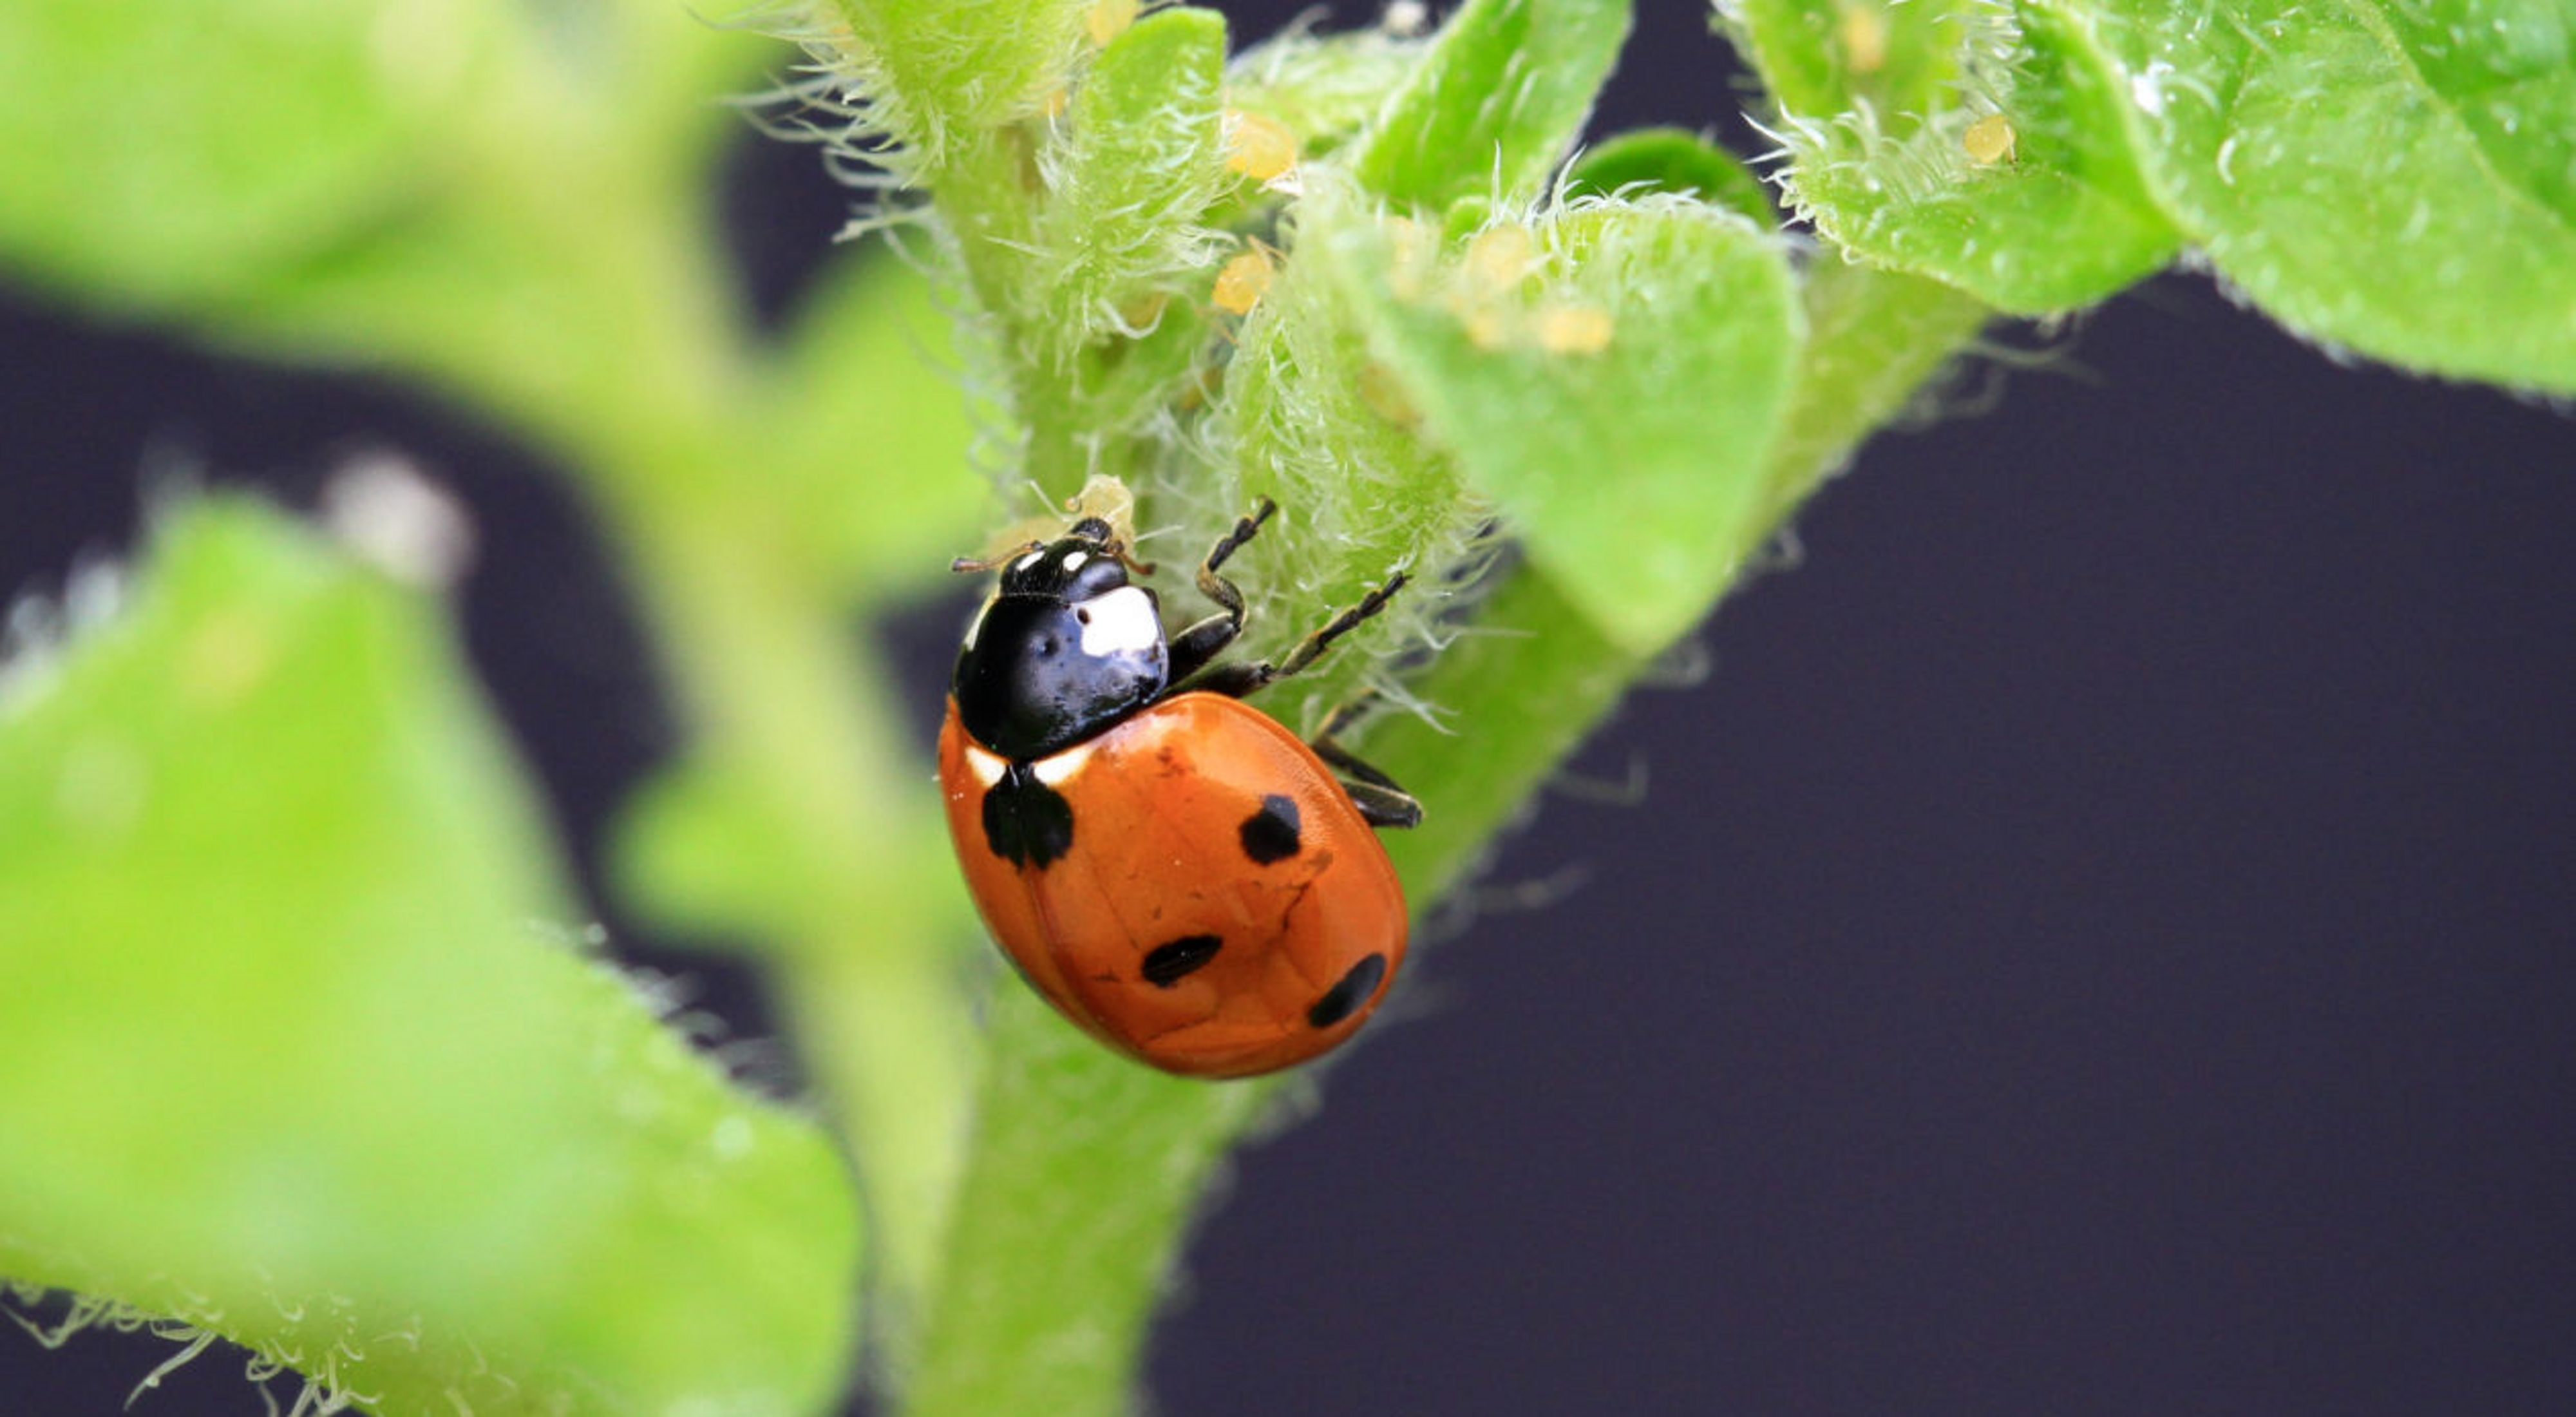 A ladybird predating on aphids on a potato plant.